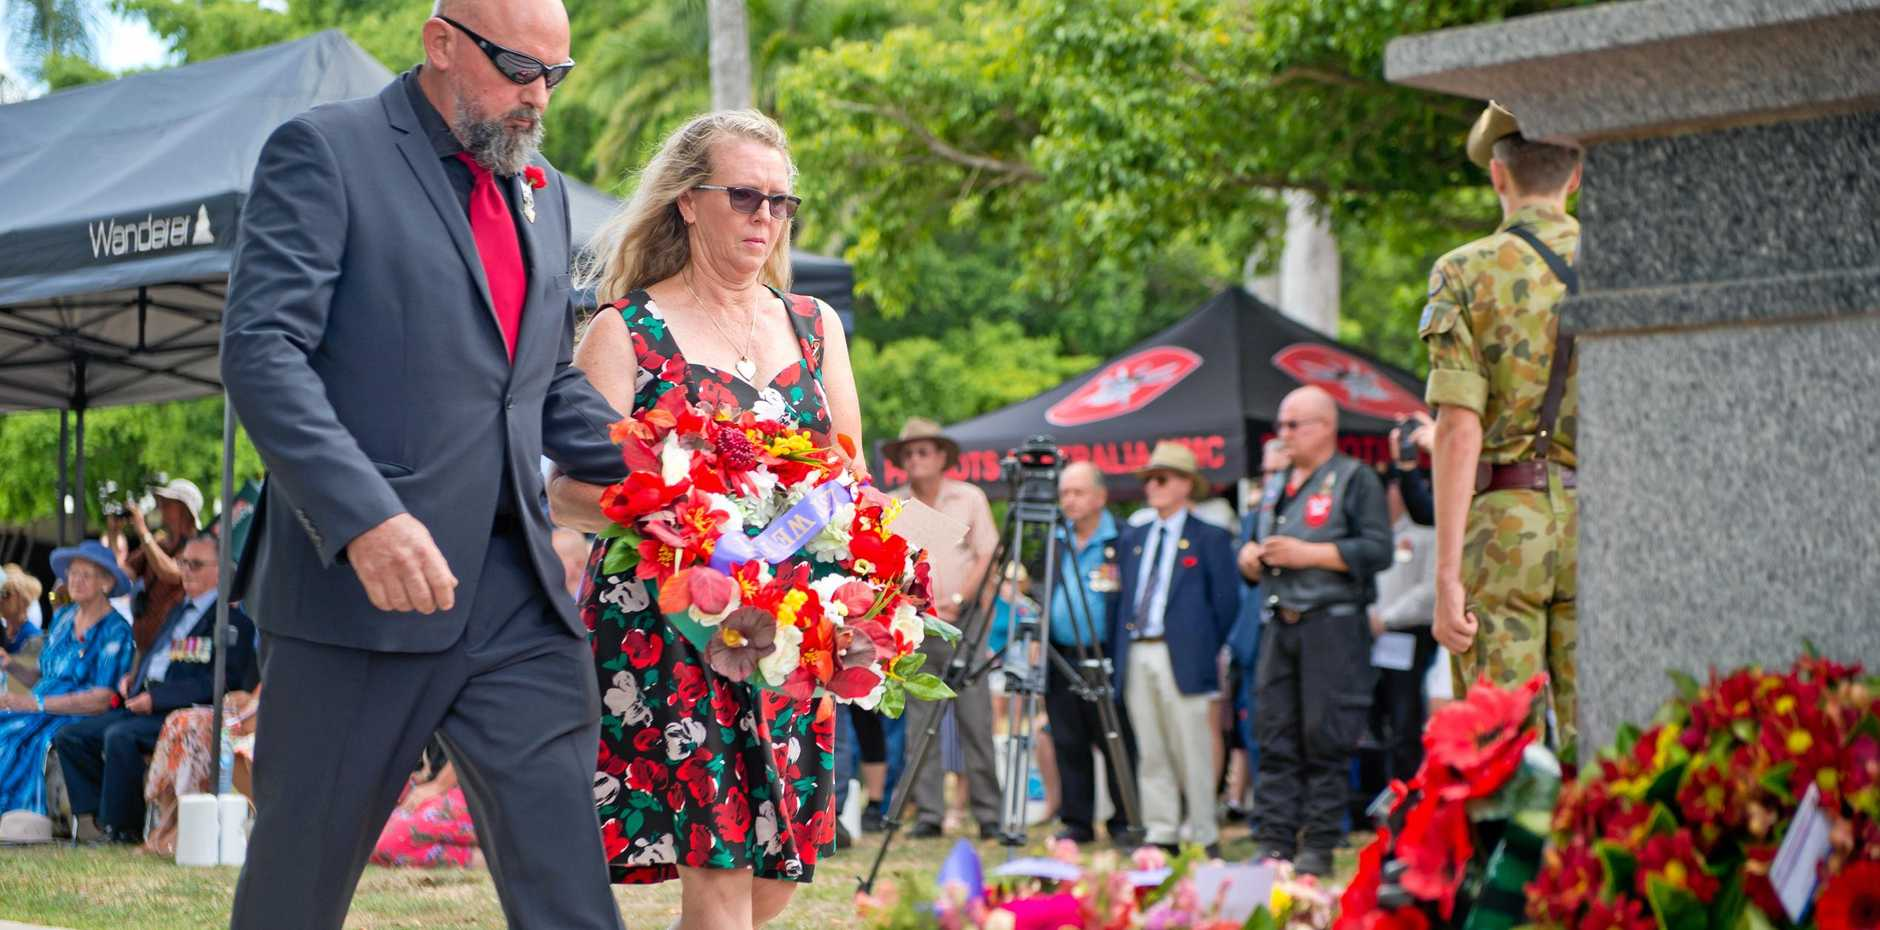 Murray and Robyn Smith lay a wreath at Jubilee Park for their son, Scott Smith, who was killed in Afghanistan in 2012.